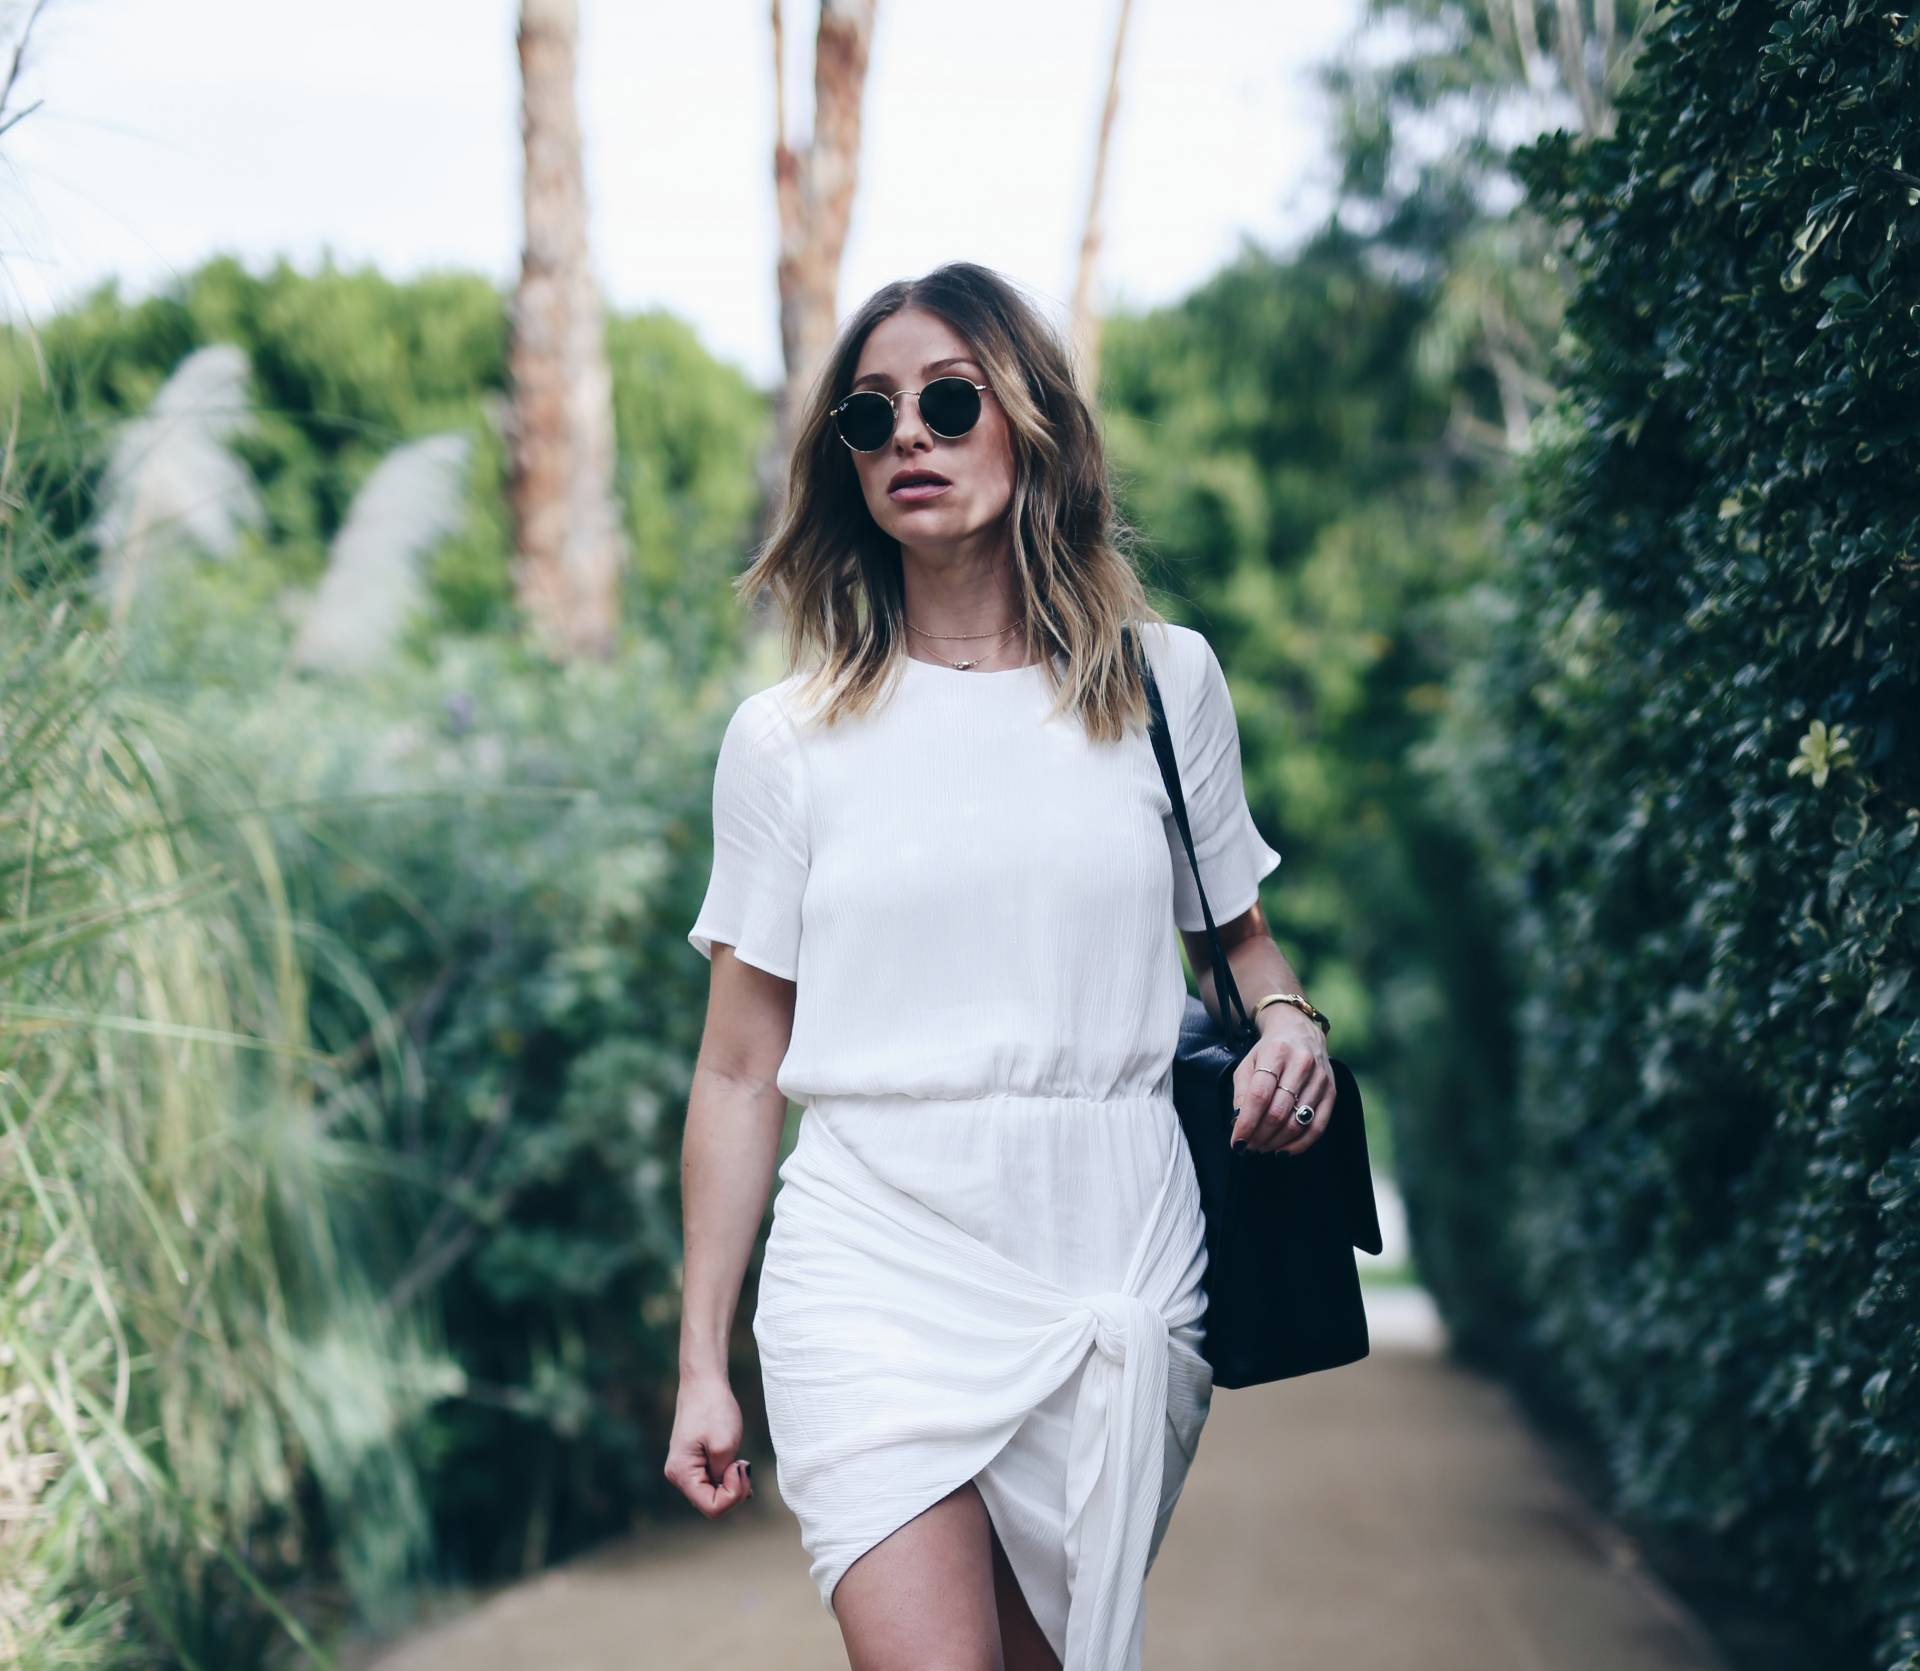 fi-Style-and-beauty-blogger-Jill-Lansky-of-The-August-Diaries-in-white-wrap-Stylestalker-dress-Balenciaga-boots-Dagne-Dover-bag-at-the-Parker-Palm-Springs copy